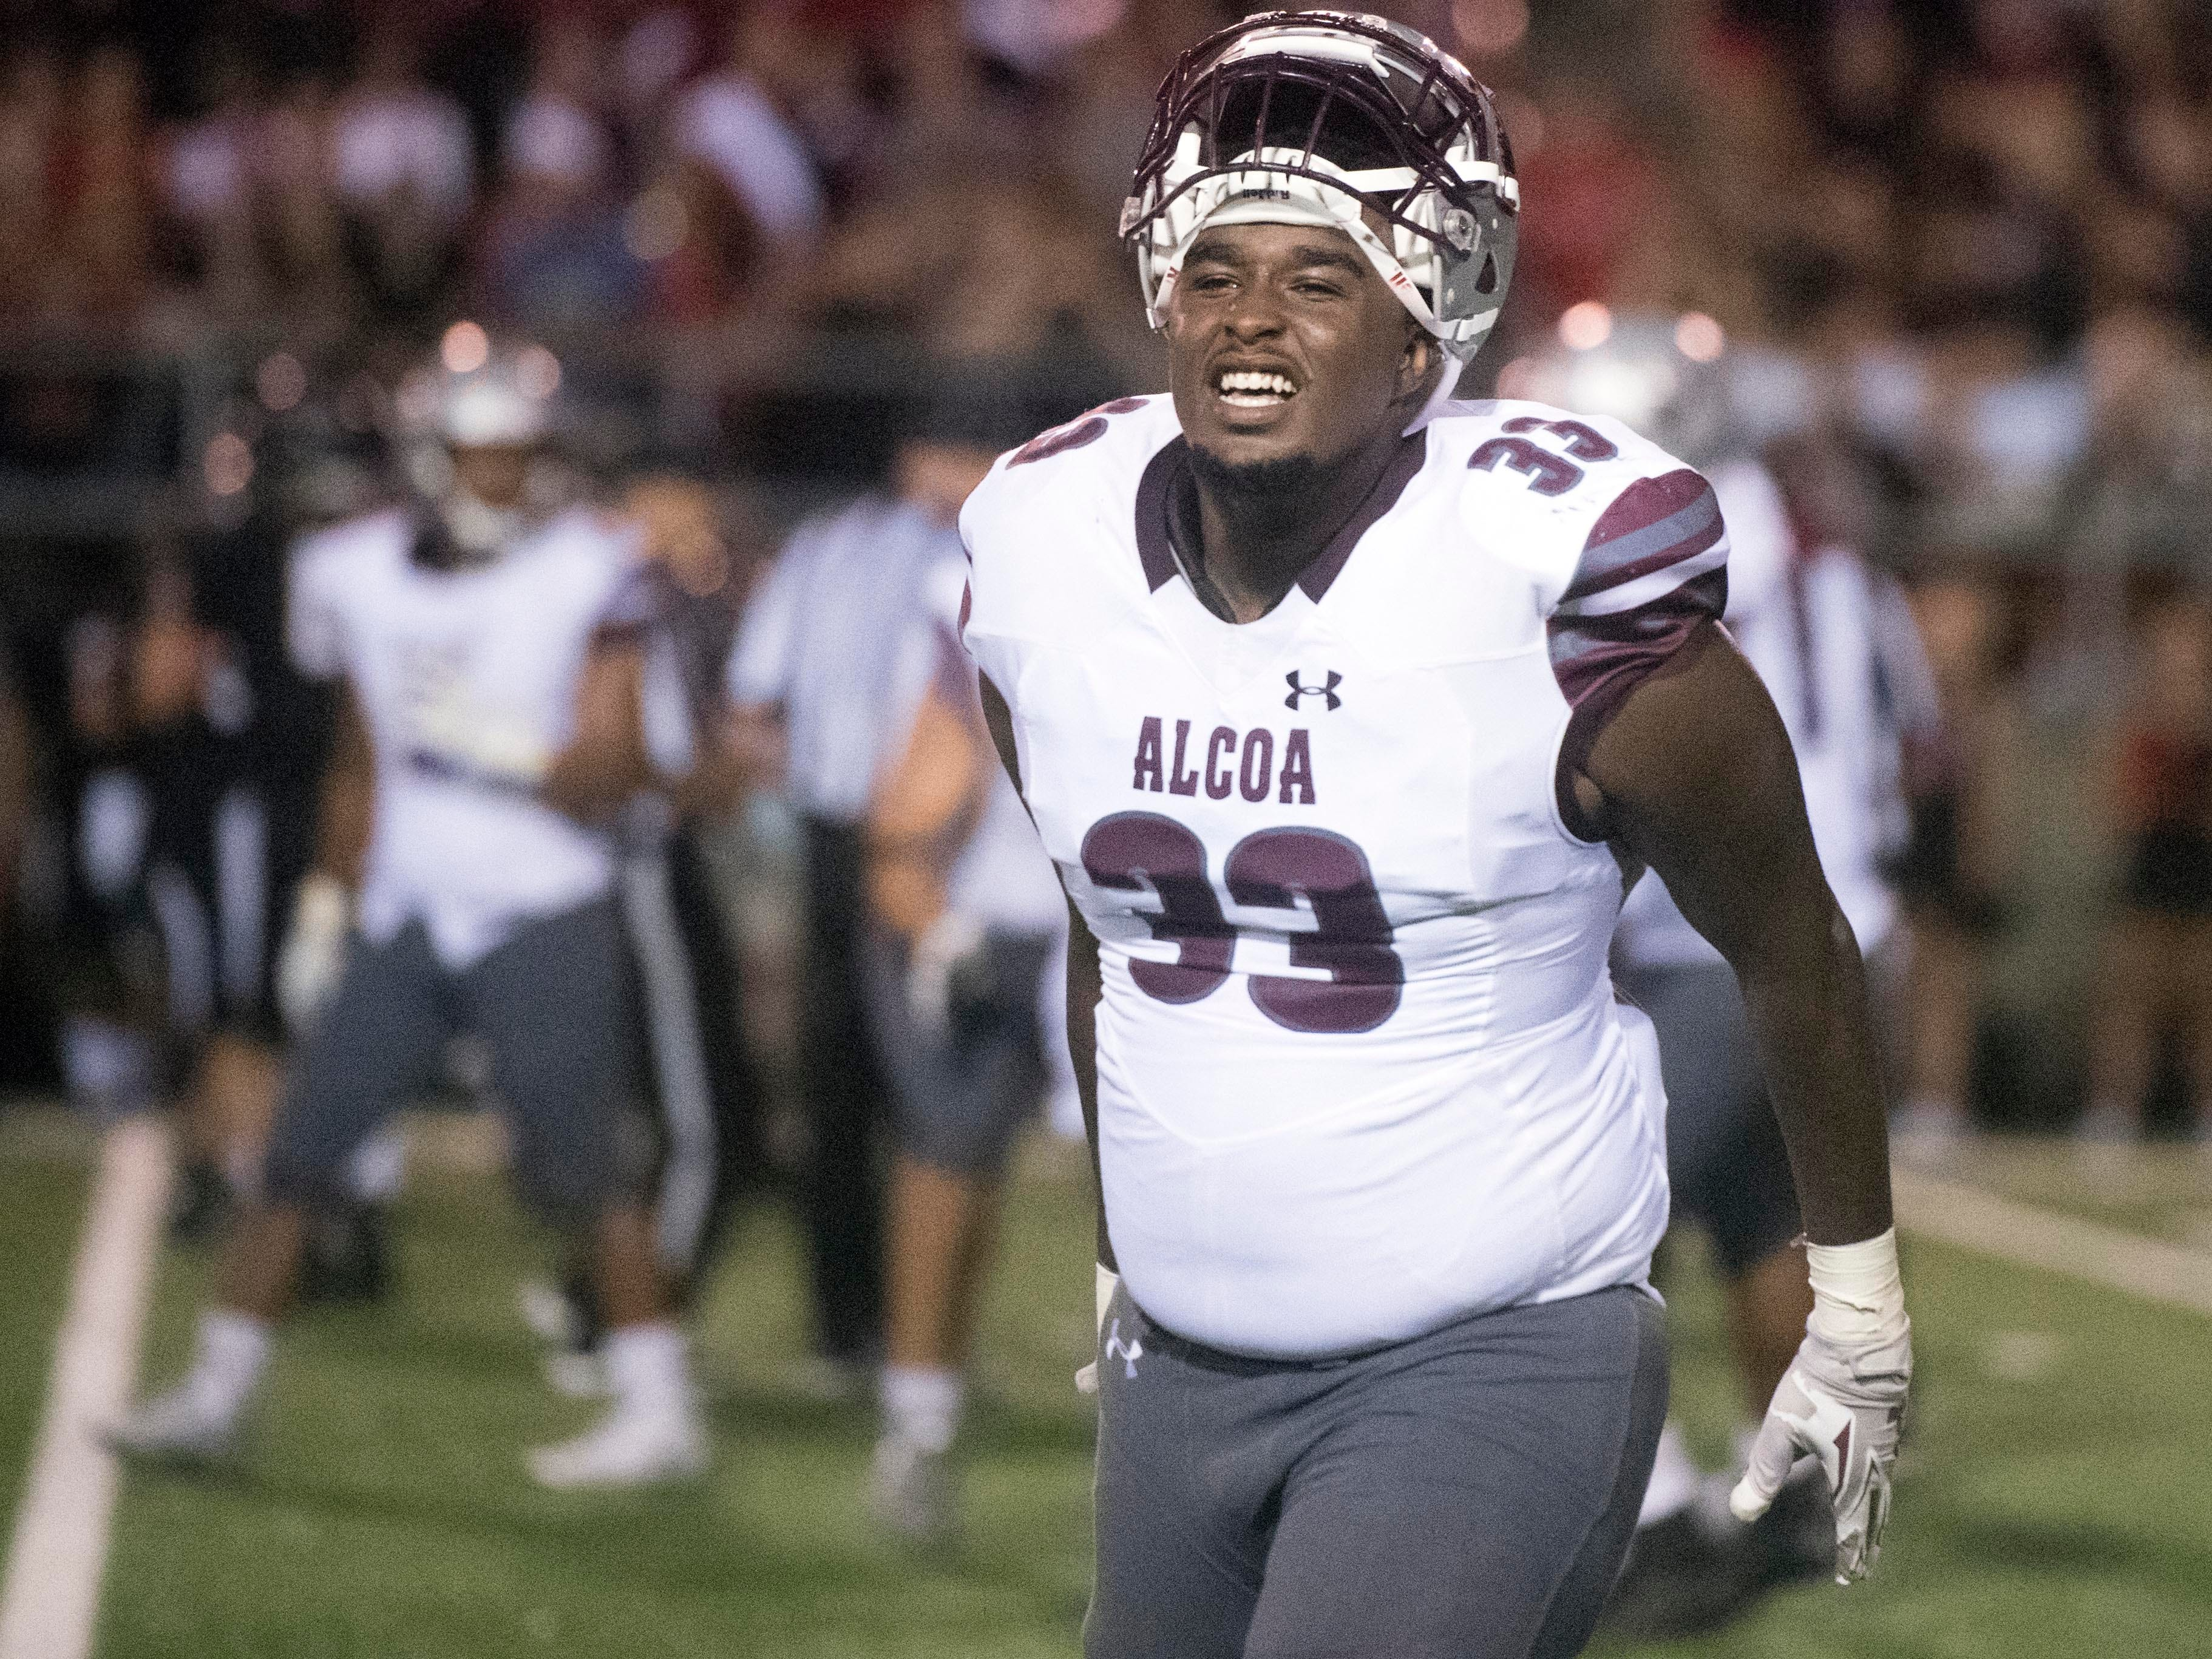 Alcoa's Adonis Salter (33) celebrates as Alcoa secures the win against Maryville on Friday, September 7, 2018.